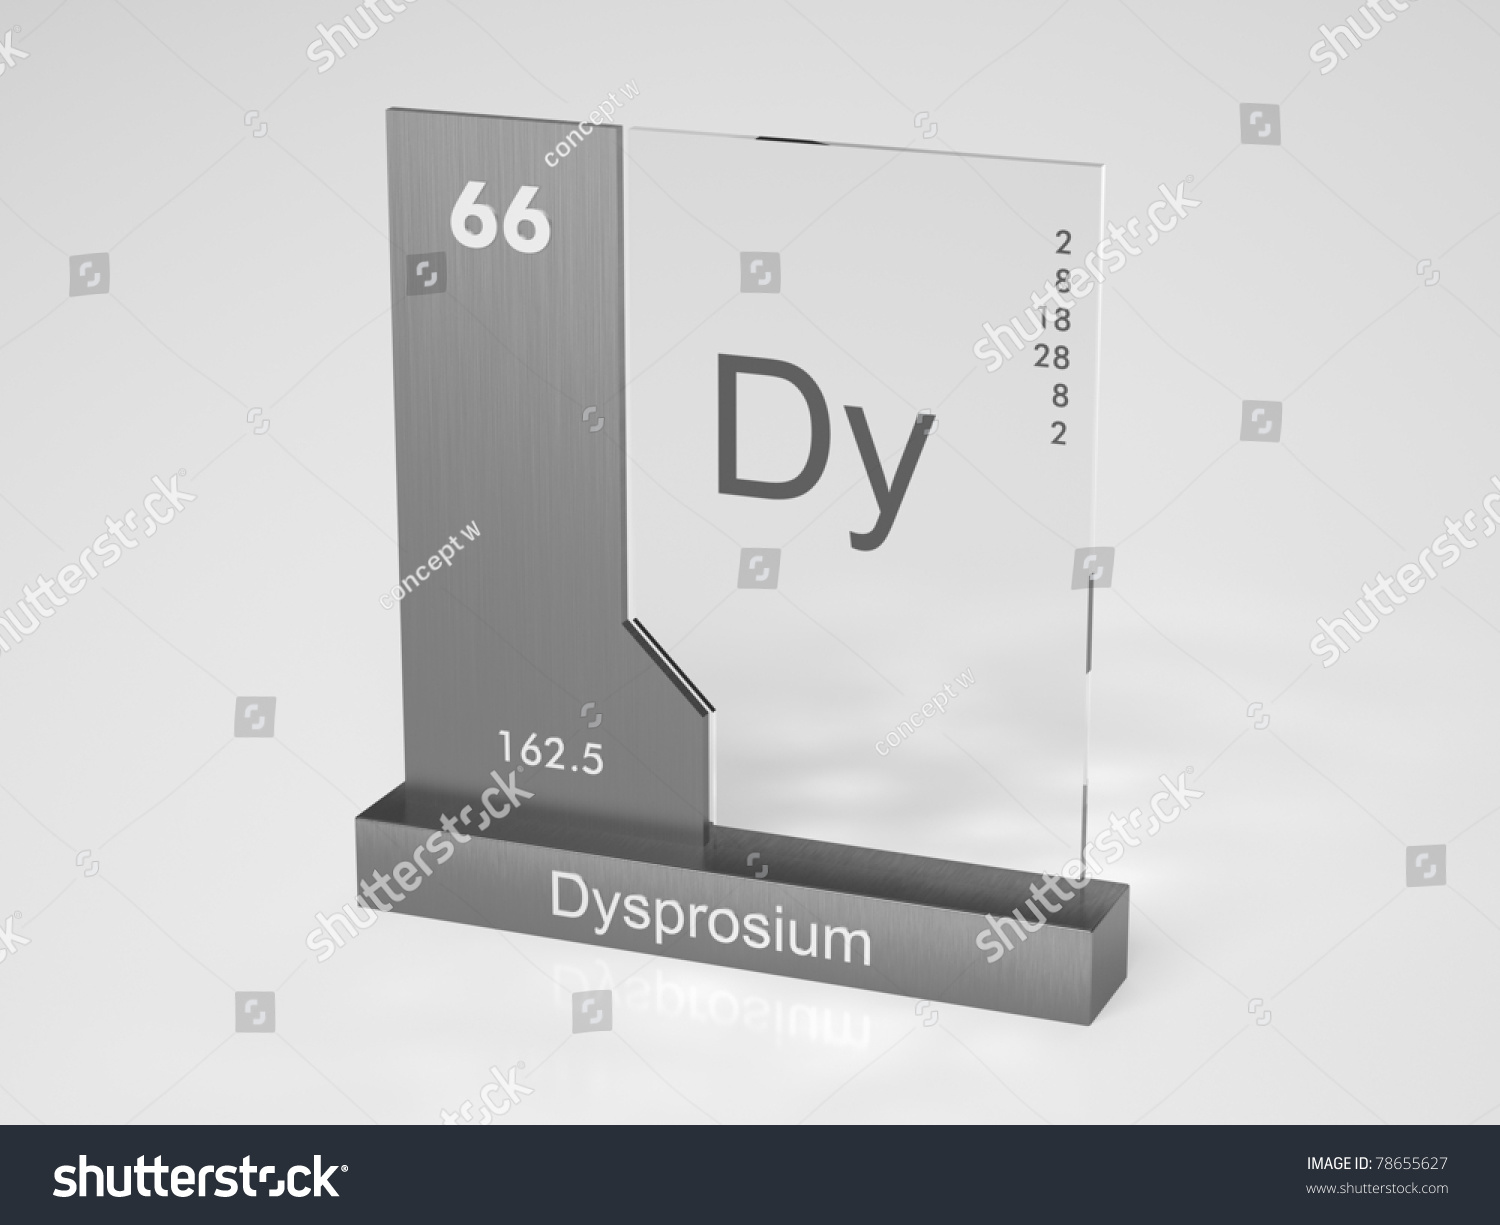 Dysprosium symbol dy chemical element periodic stock illustration dysprosium symbol dy chemical element of the periodic table gamestrikefo Image collections